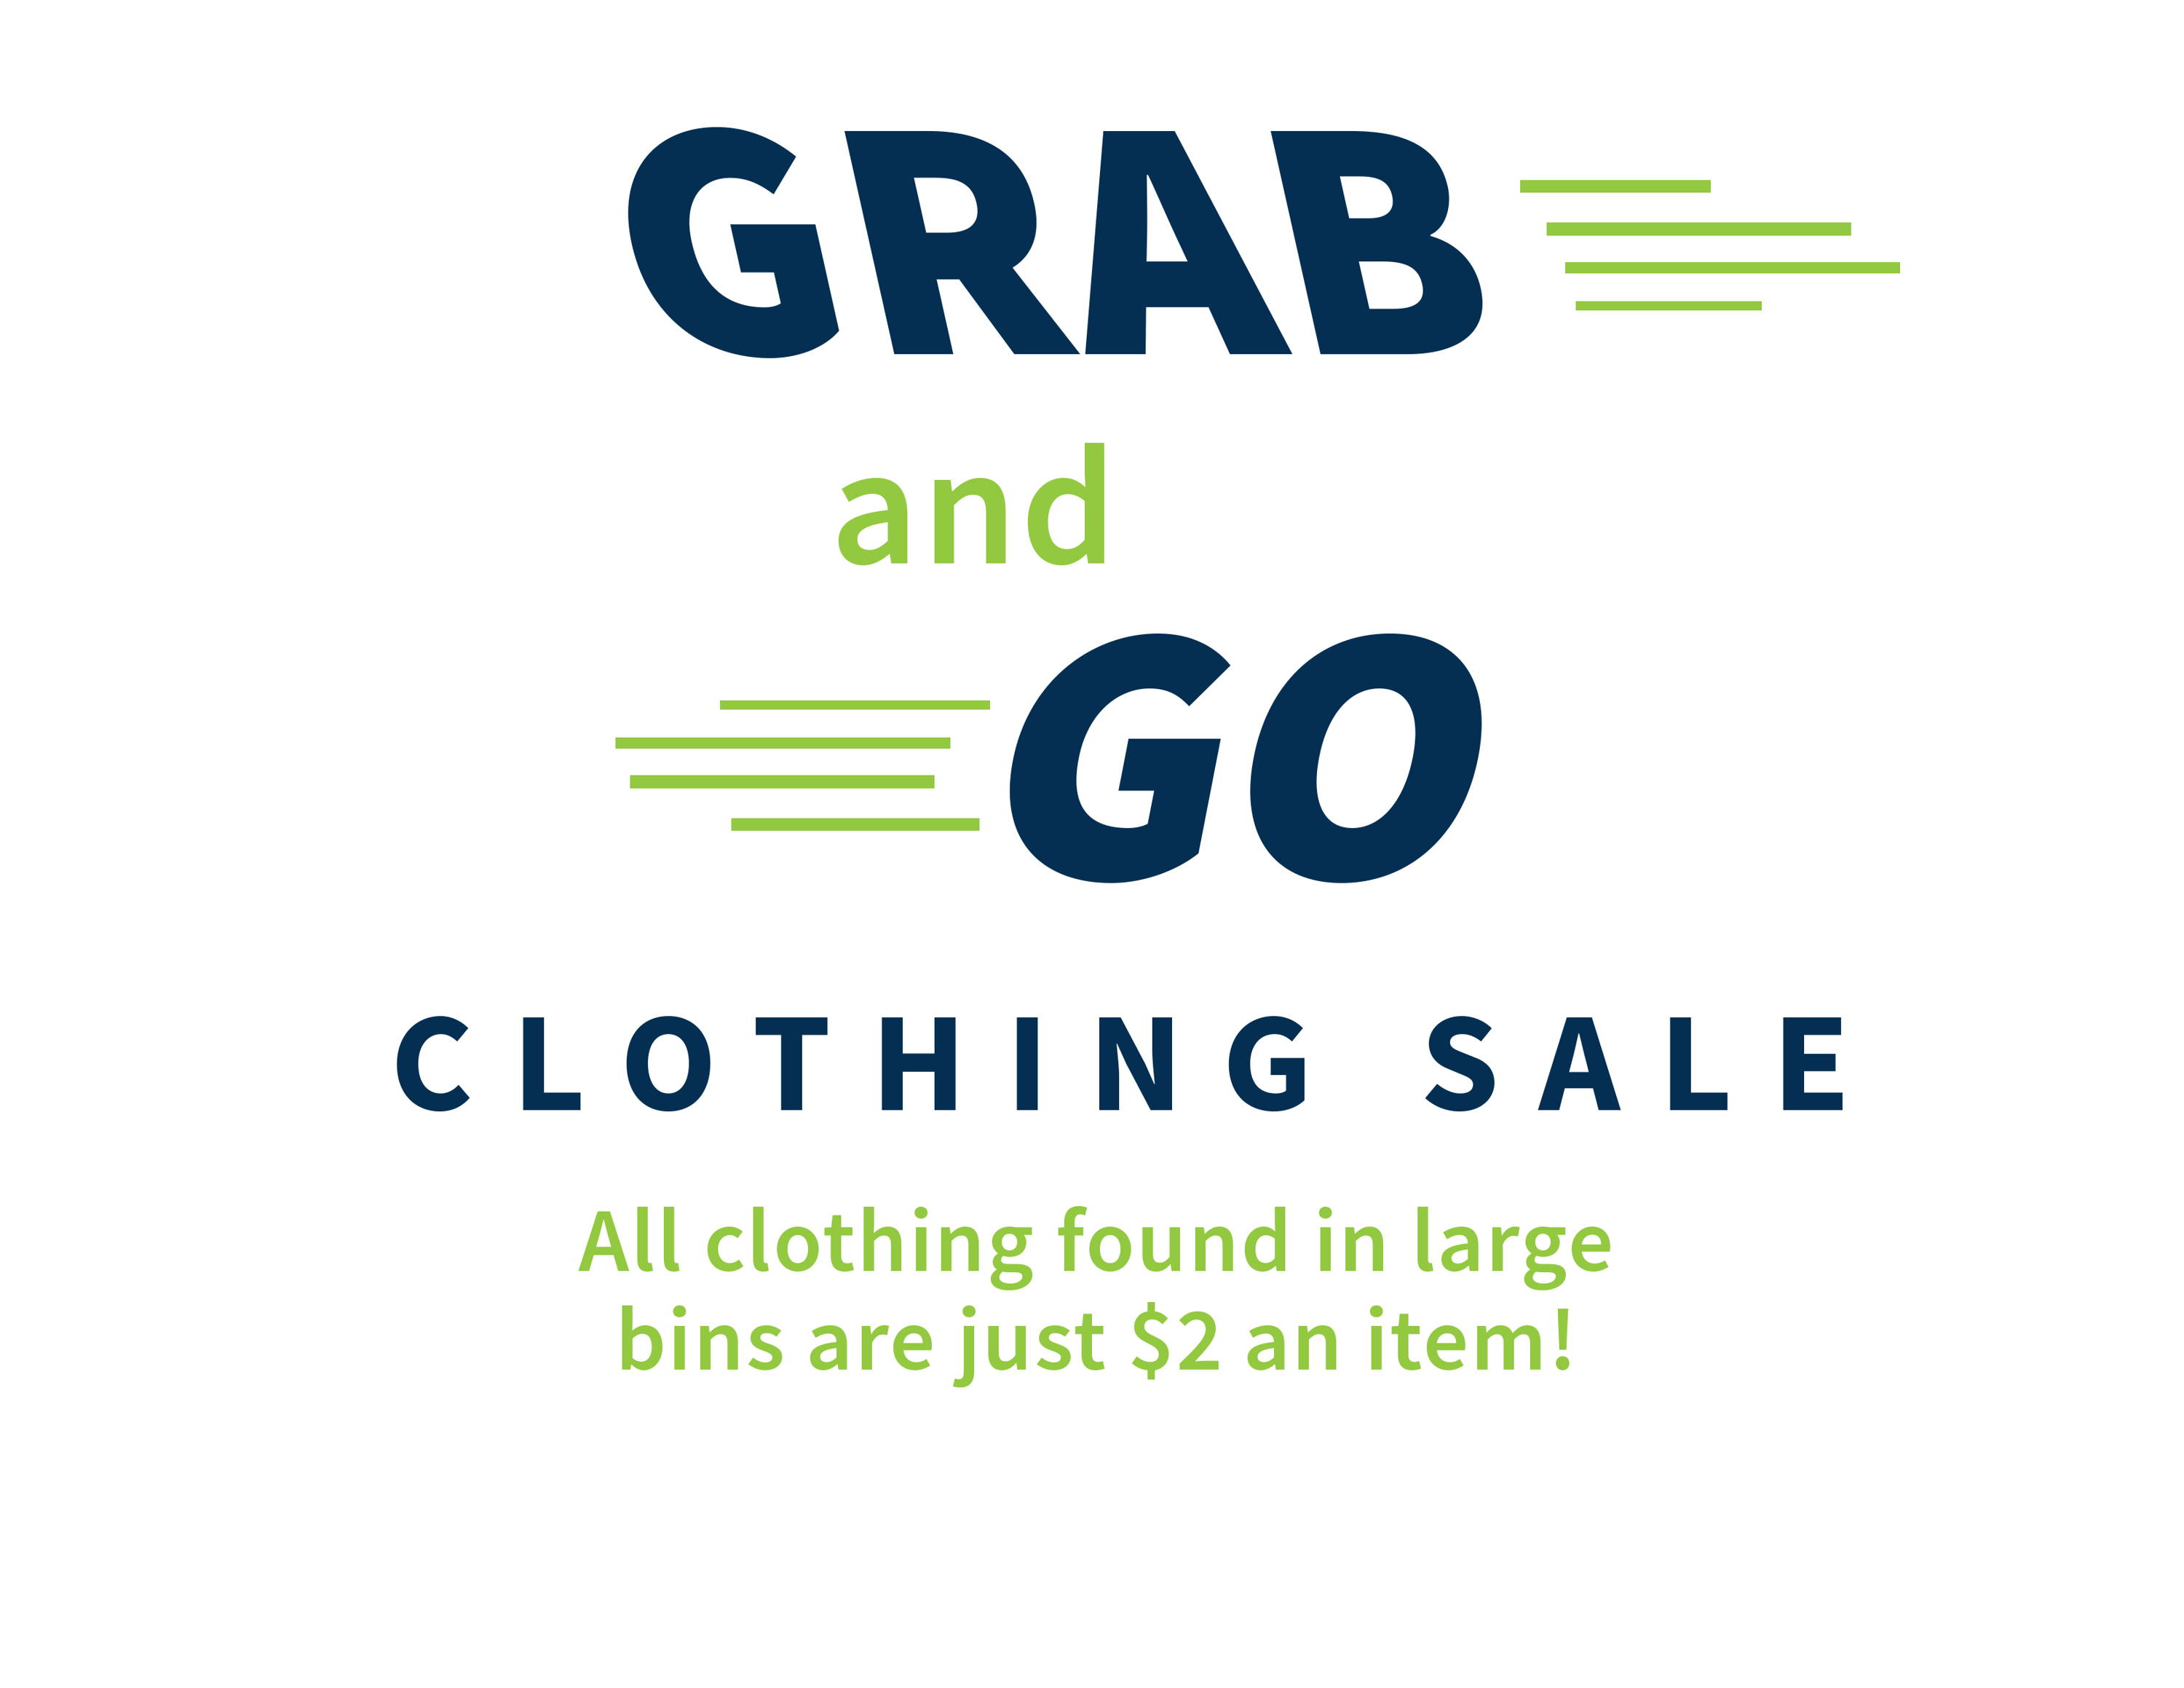 $2 clothing sale, all clothing in large bins is only $2